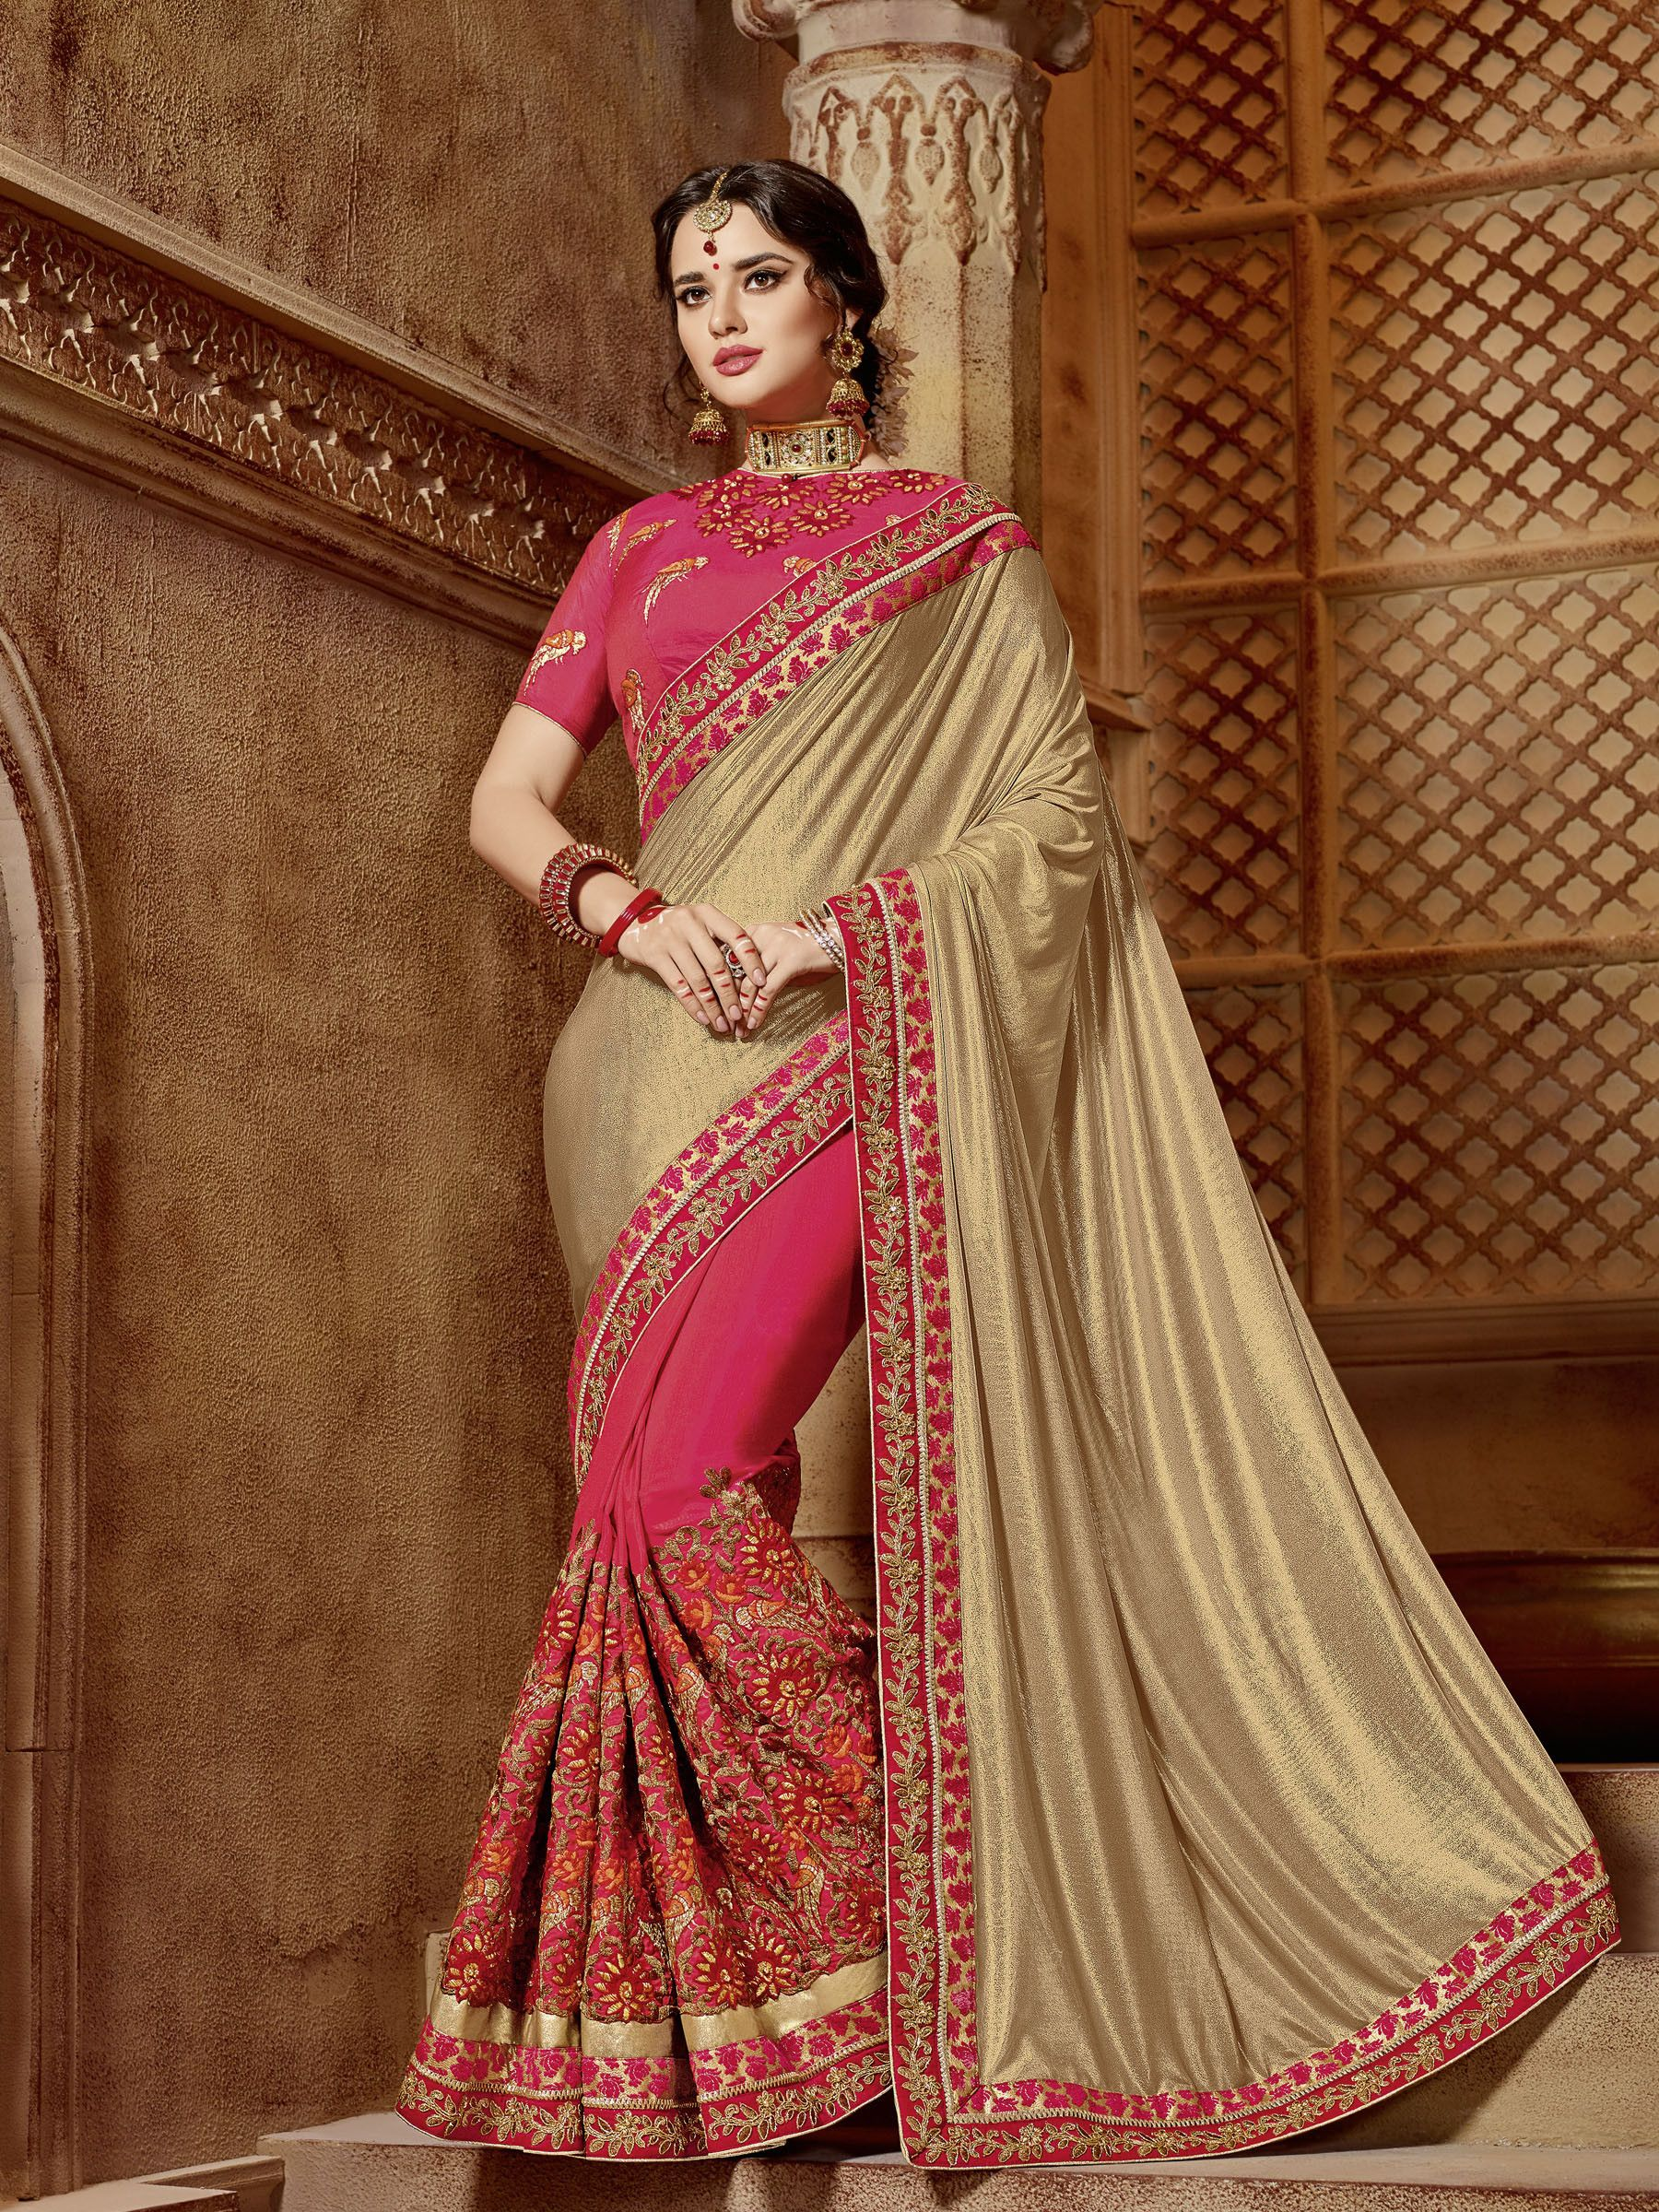 81a73fbf38 Buy online gold and red colour Designer Heavy work Wedding Saree at  joshindia #weddings #bride #saree #design #designers #designersaree